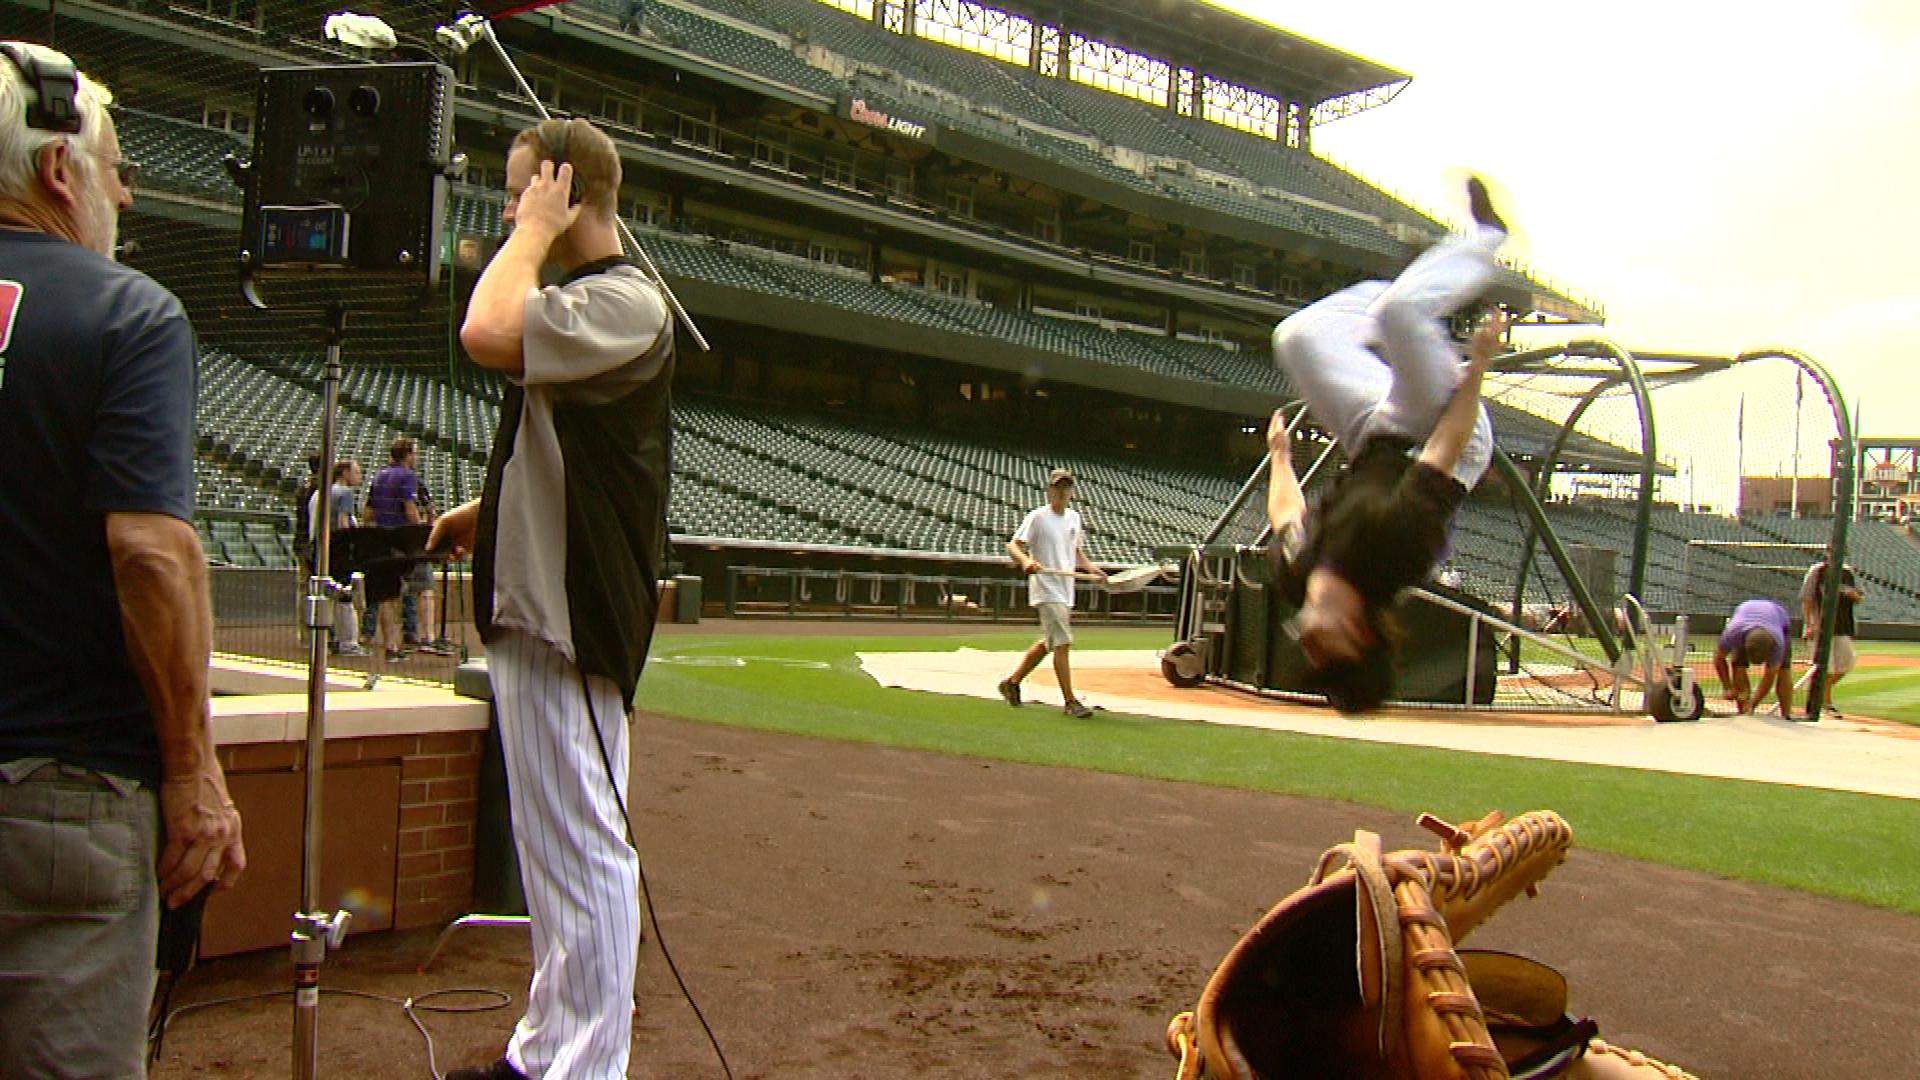 Charlie Culberson doing a backflip behind Justin Morneau while he was doing a TV interview (credit: CBS)